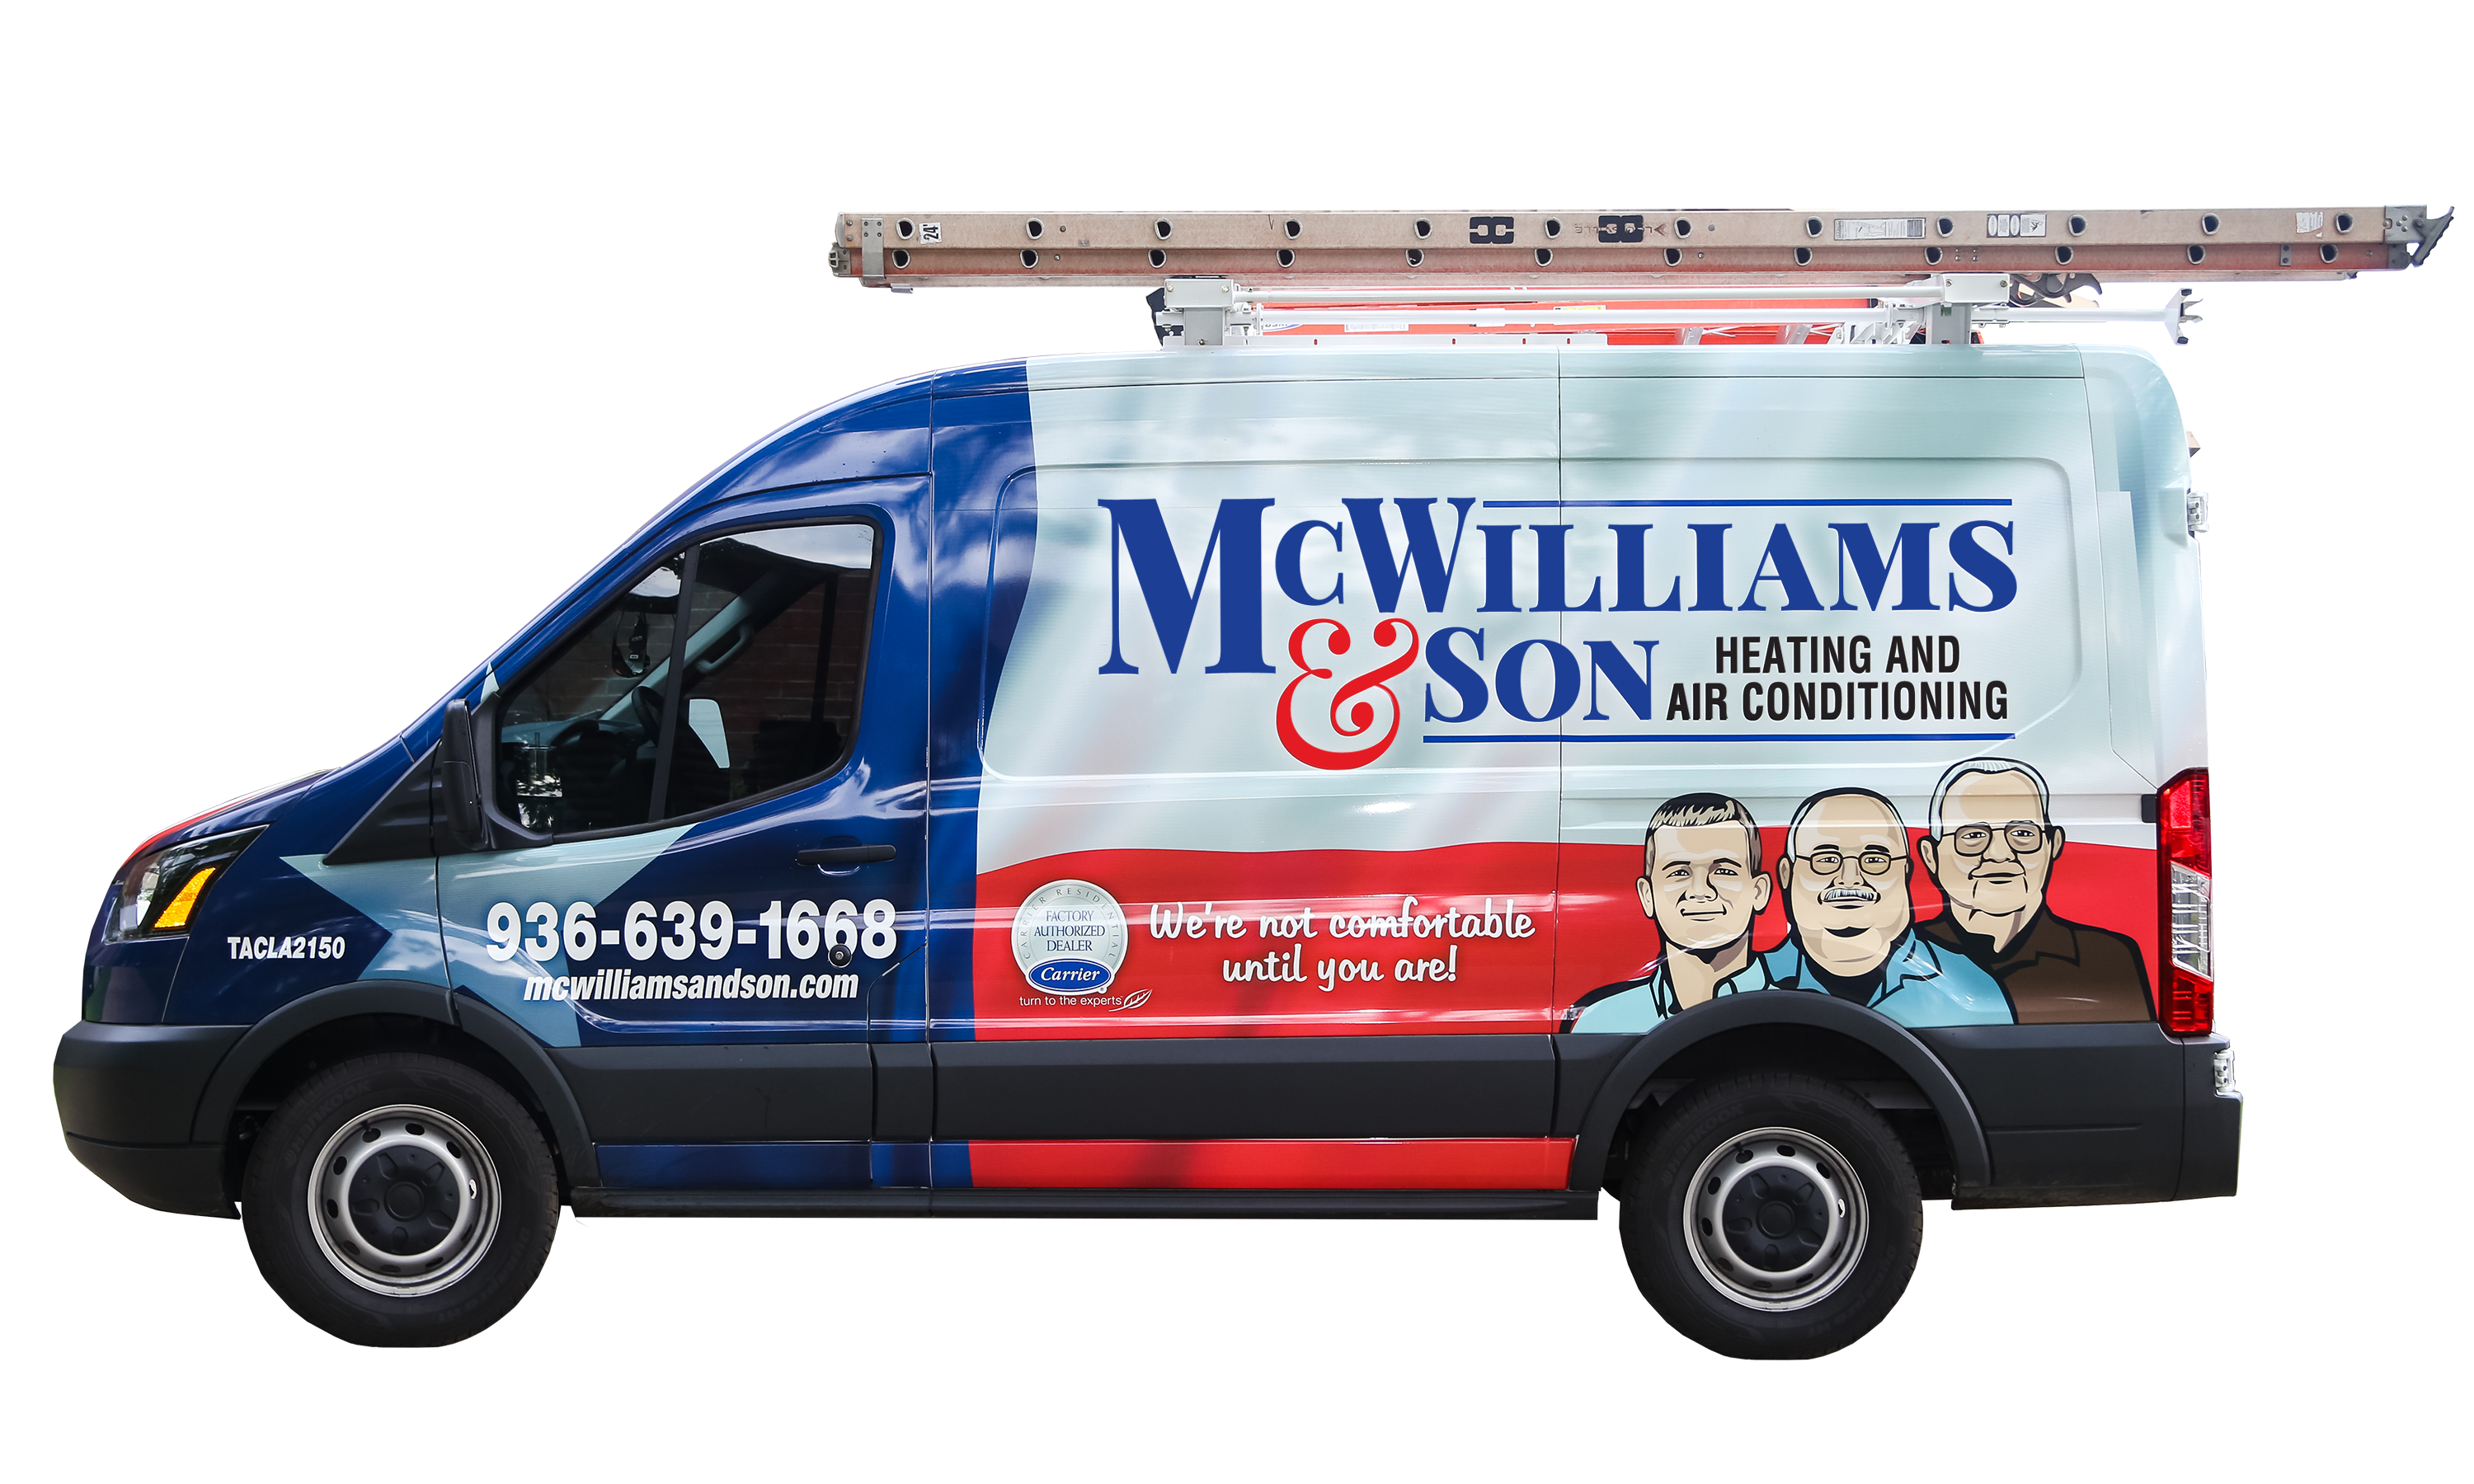 McWilliams & Son Heating and Air Conditioning image 7